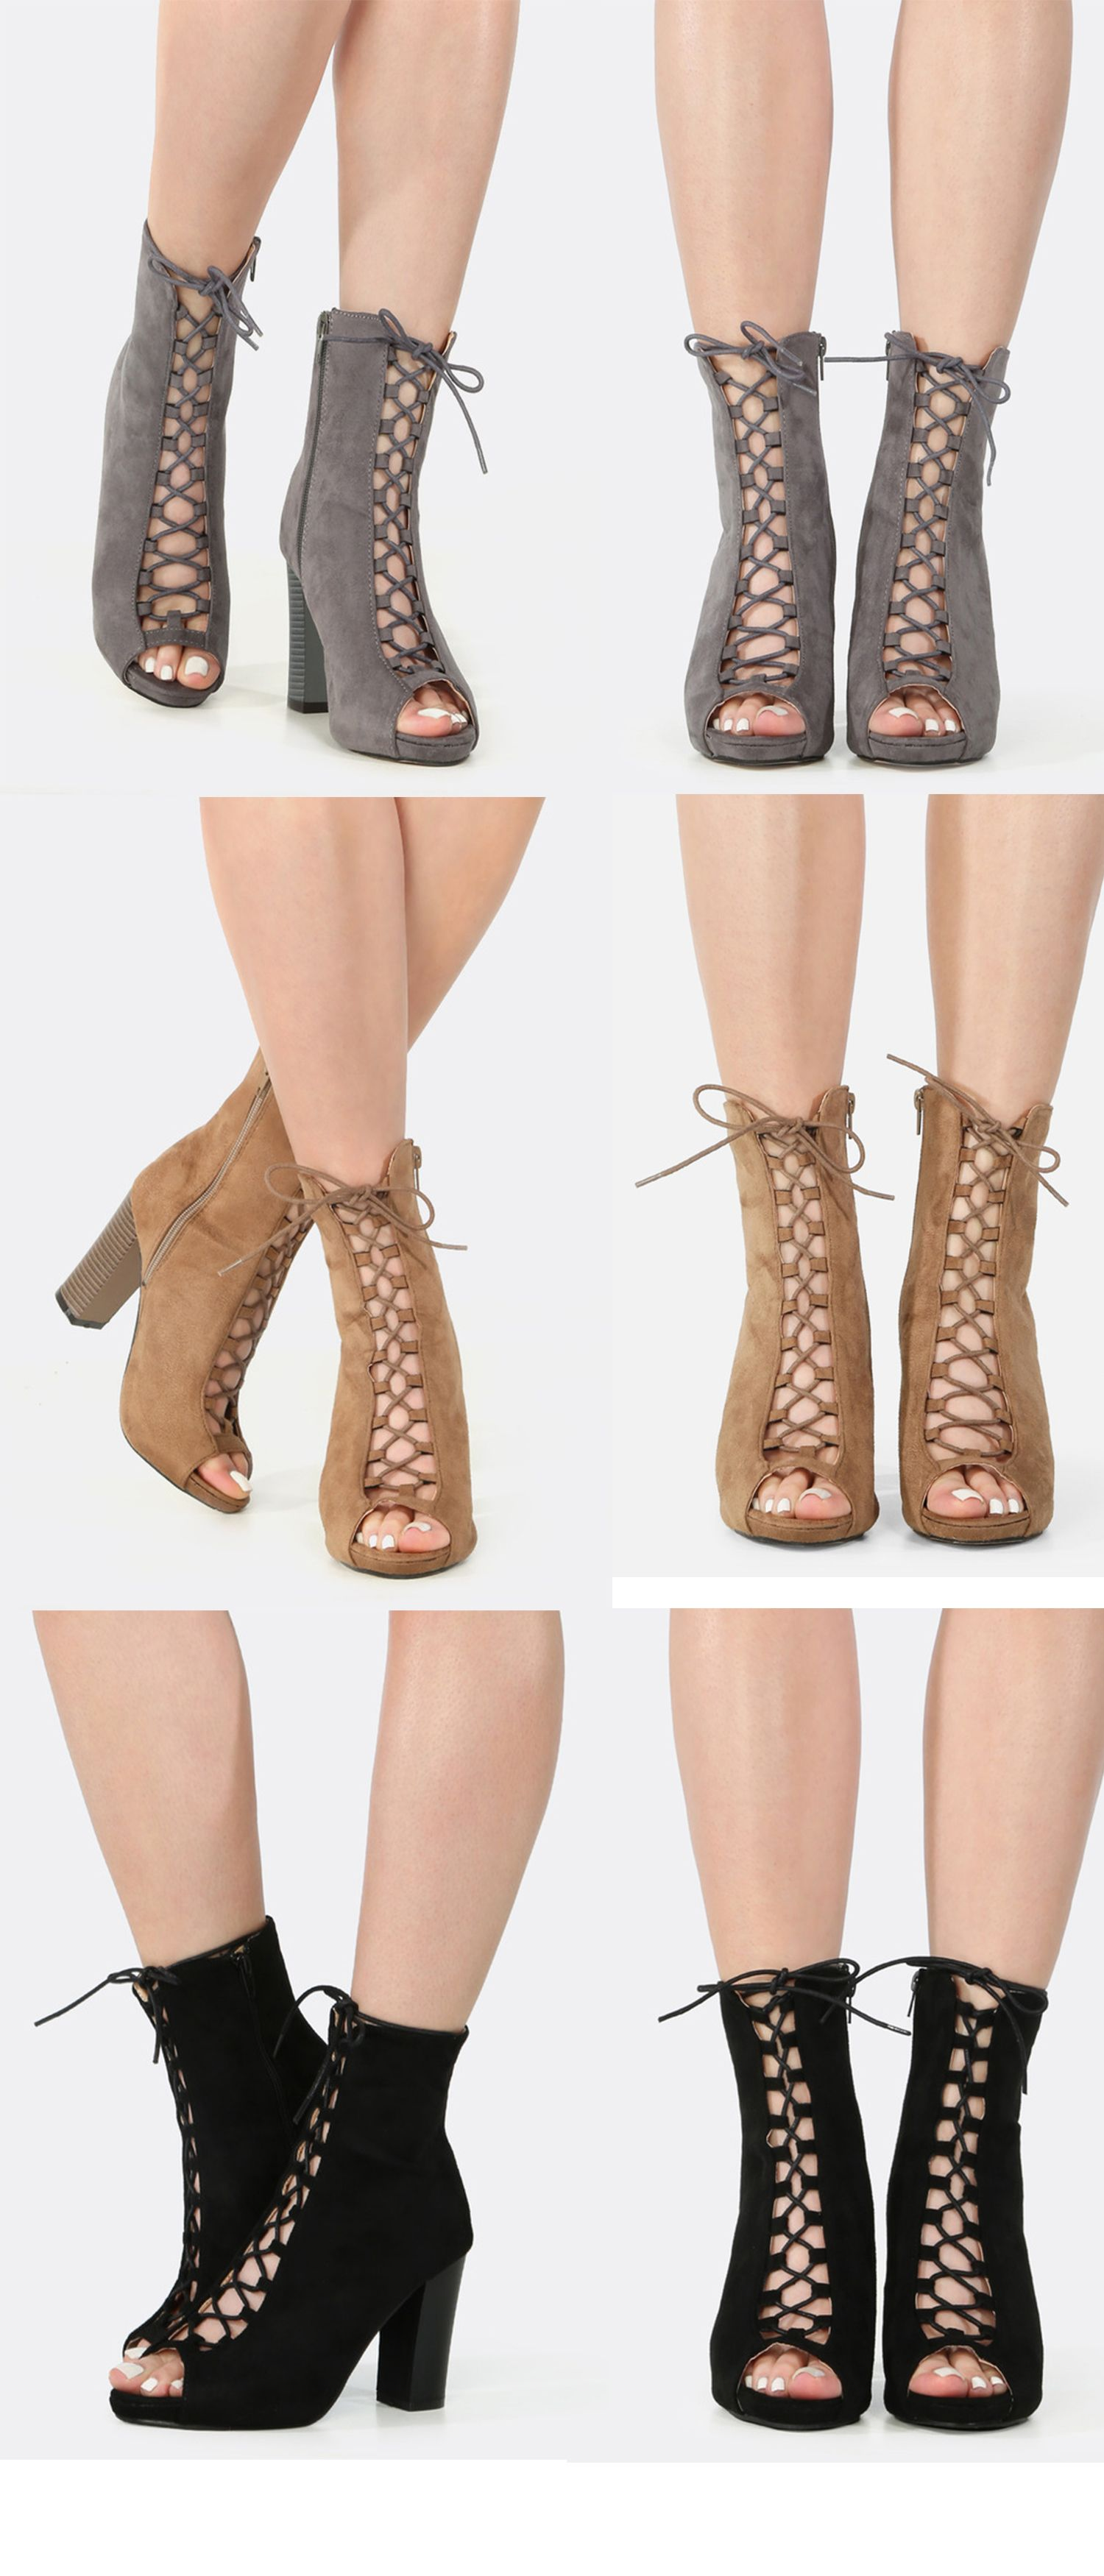 18829e9792 Put a surprising spin on your everyday casual ensemble with the Peep Toe  Lace Up Chunky Heel Booties! This chic ankle boot features an open toe, faux  suede ...